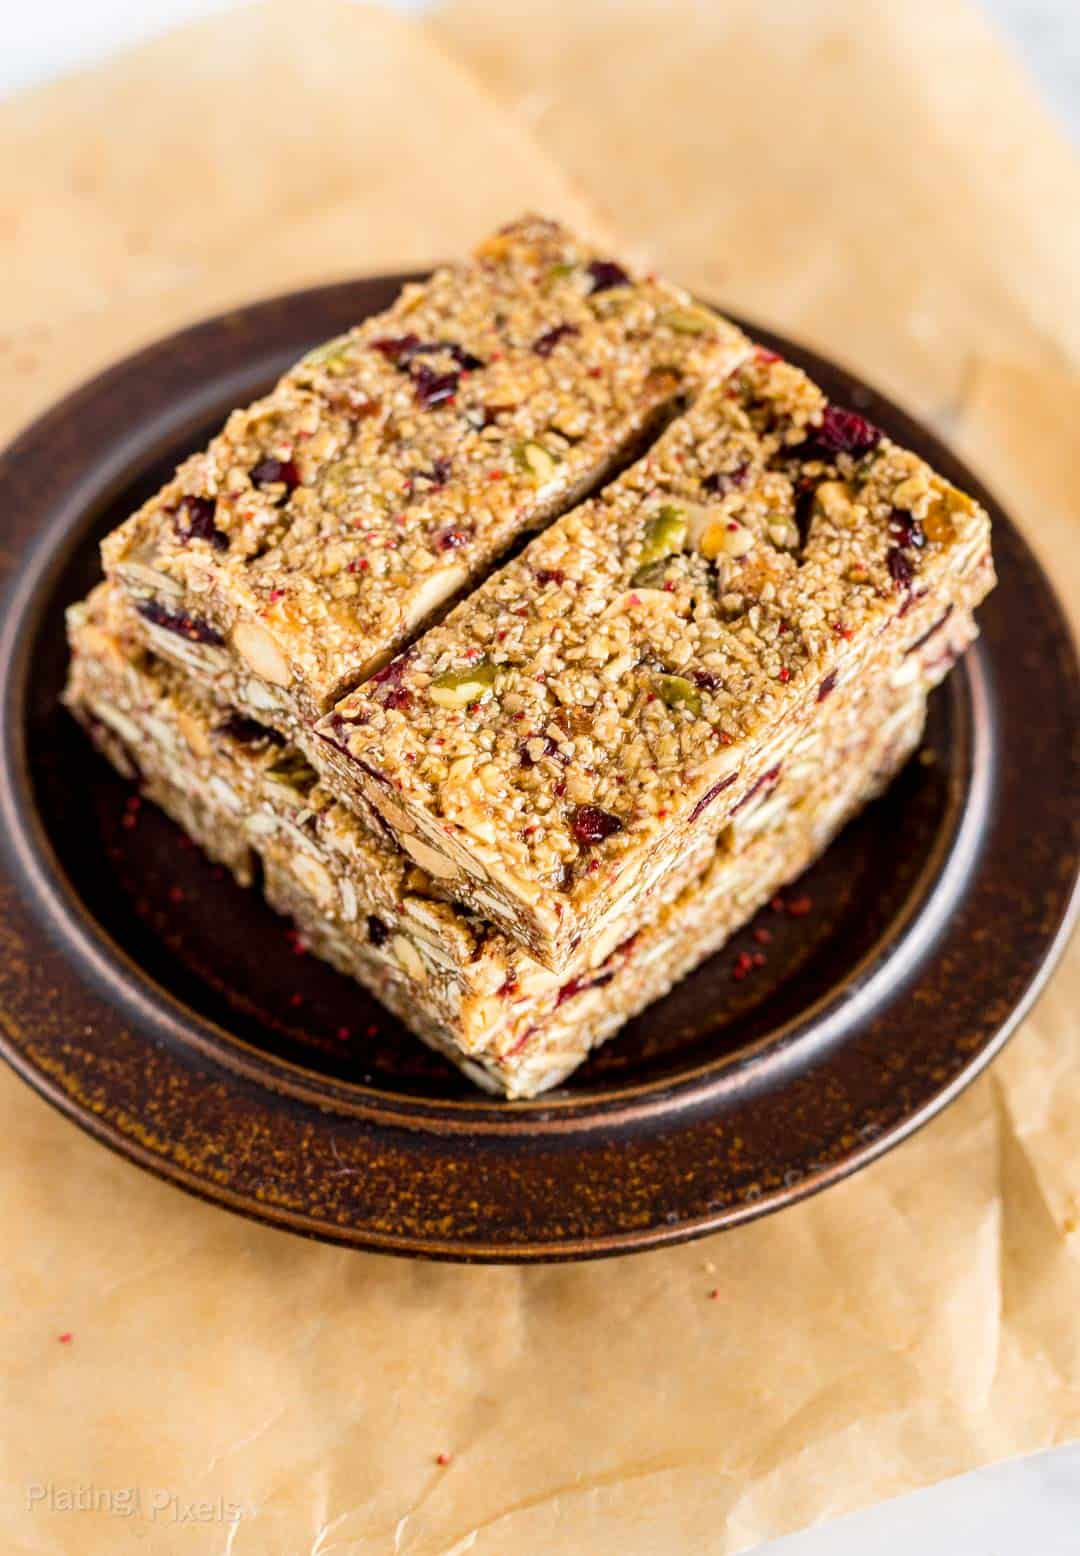 Cranberry Almond Granola Bars on a plate